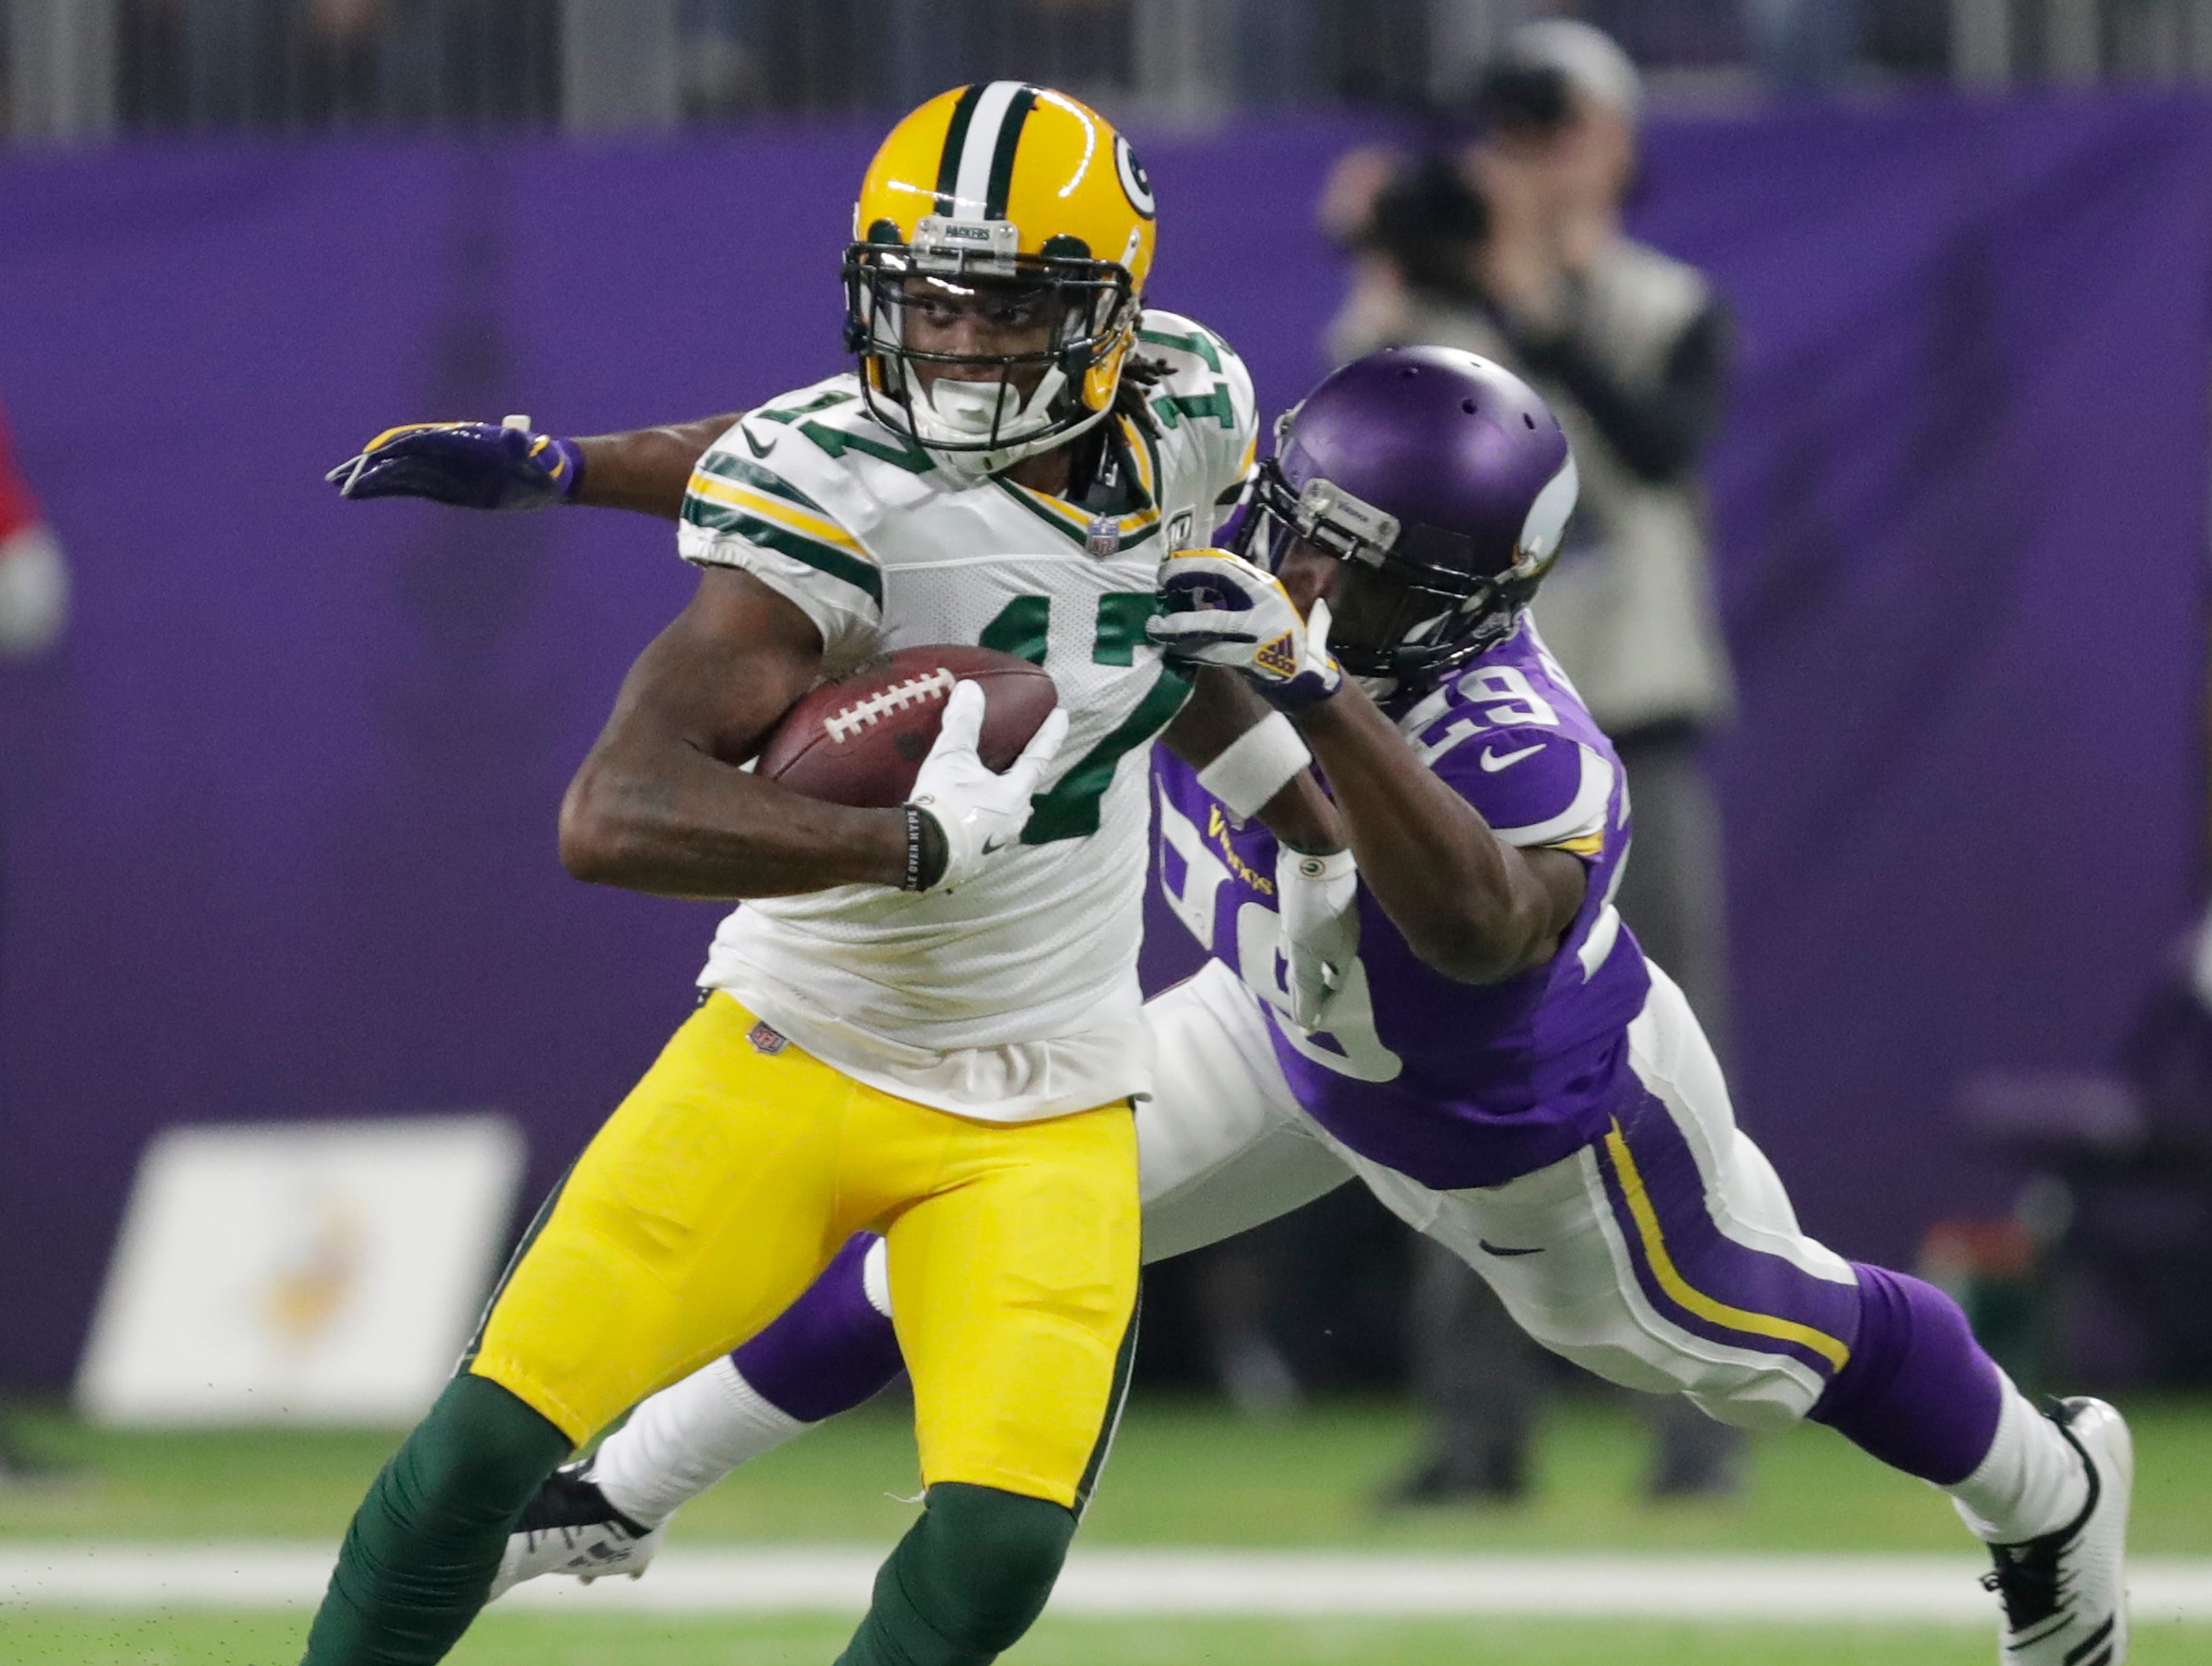 Green Bay Packers wide receiver Davante Adams (17) breaks away from Minnesota Vikings cornerback Xavier Rhodes (29) in the third quarter during their football game Sunday, November 25, 2018, at U.S. Bank Stadium in Minneapolis, Minn. 